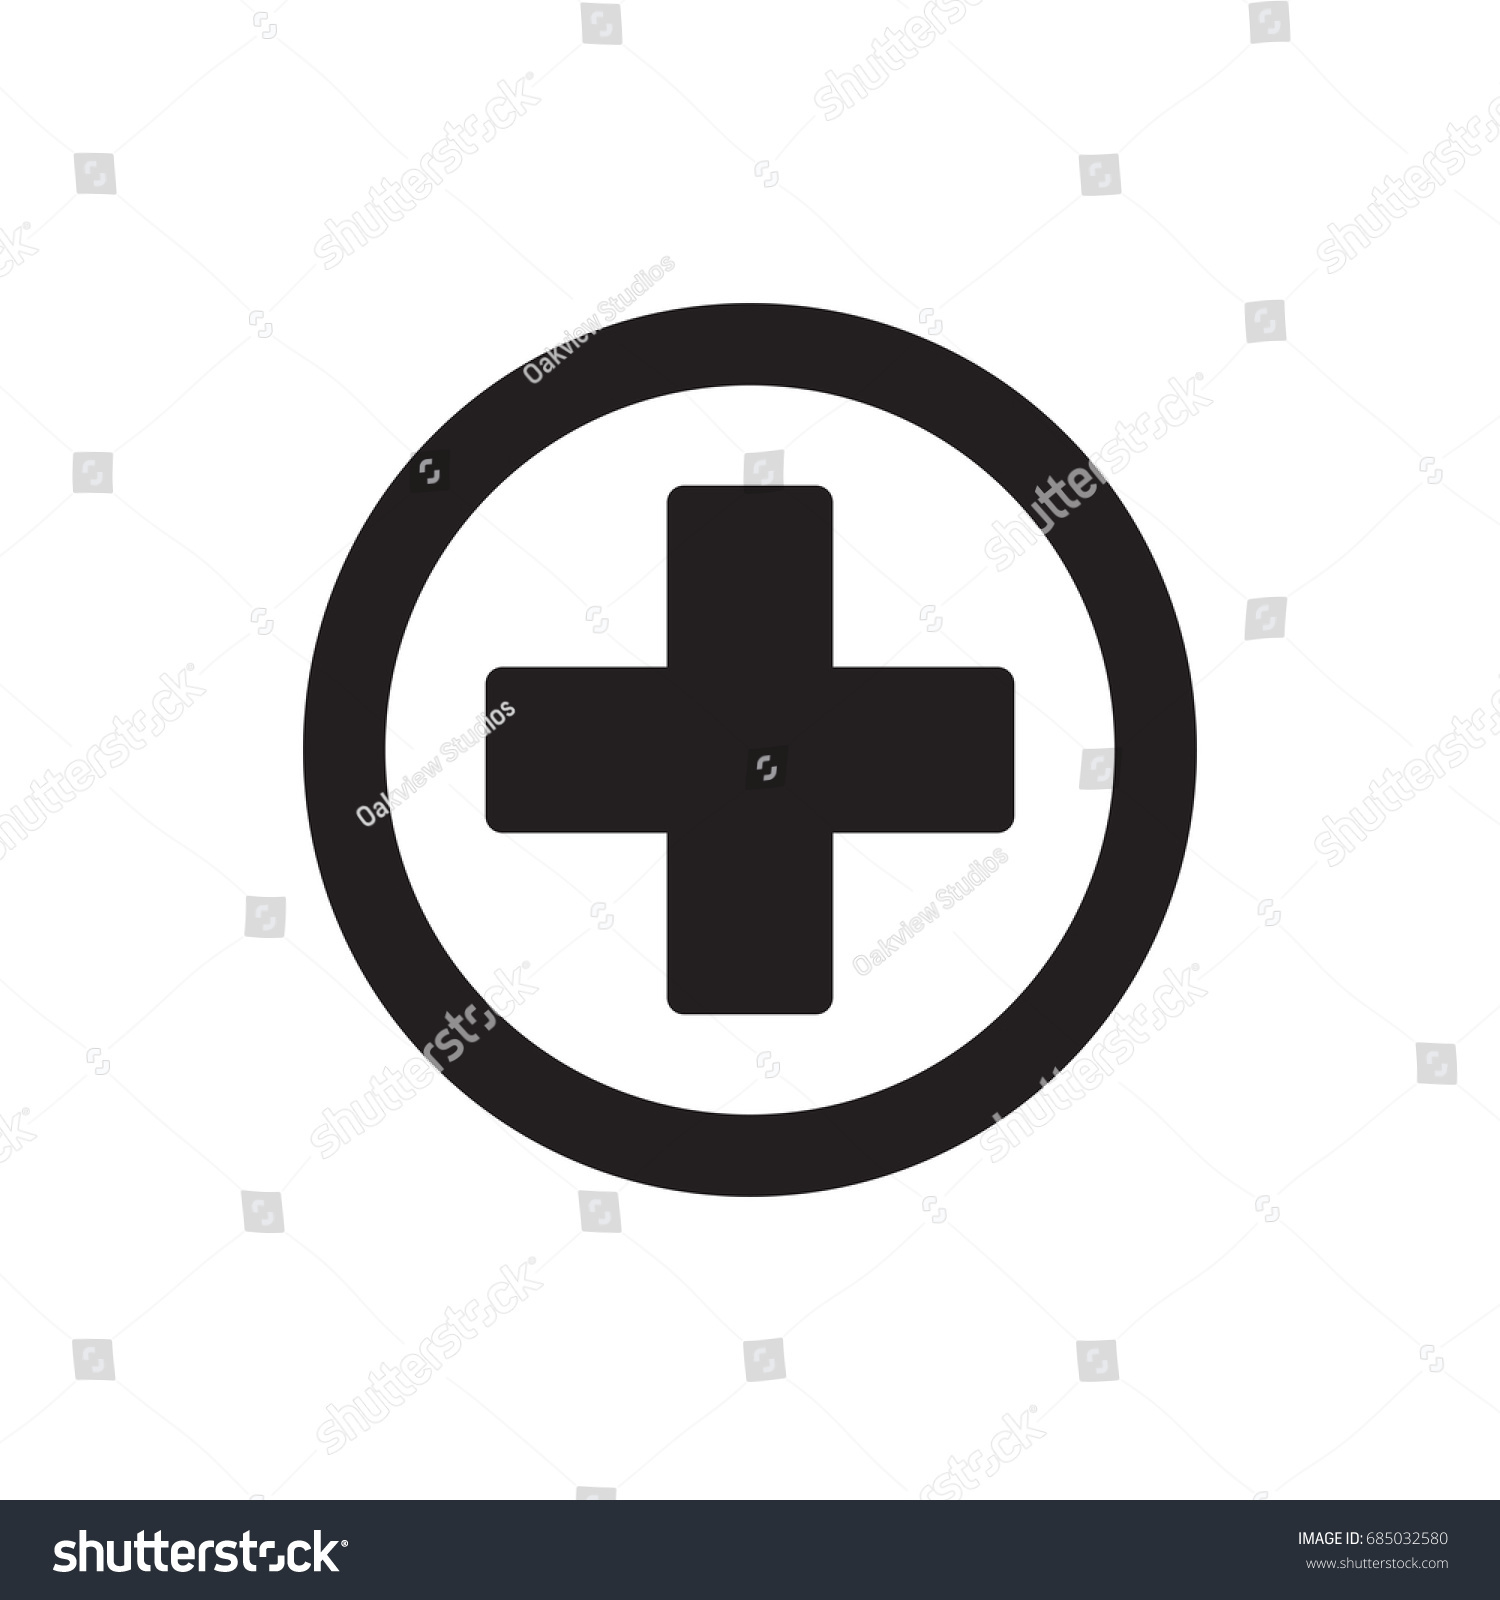 Plus sign icon positive symbol vector stock vector 685032580 plus sign icon positive symbol vector biocorpaavc Choice Image